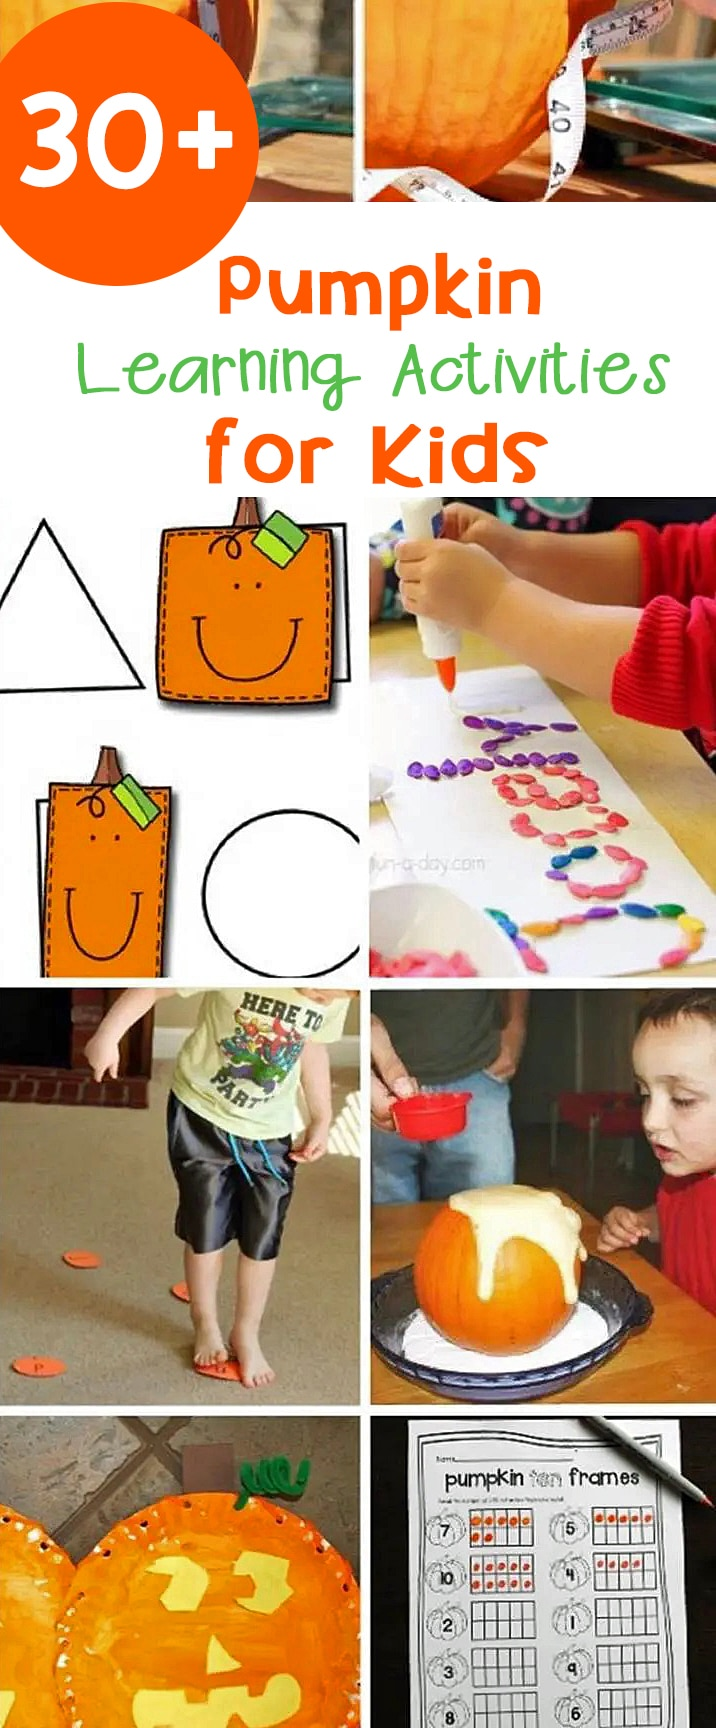 Check out this list of over 30 awesome pumpkin activities for kids to try out this fall in the classroom or at home!